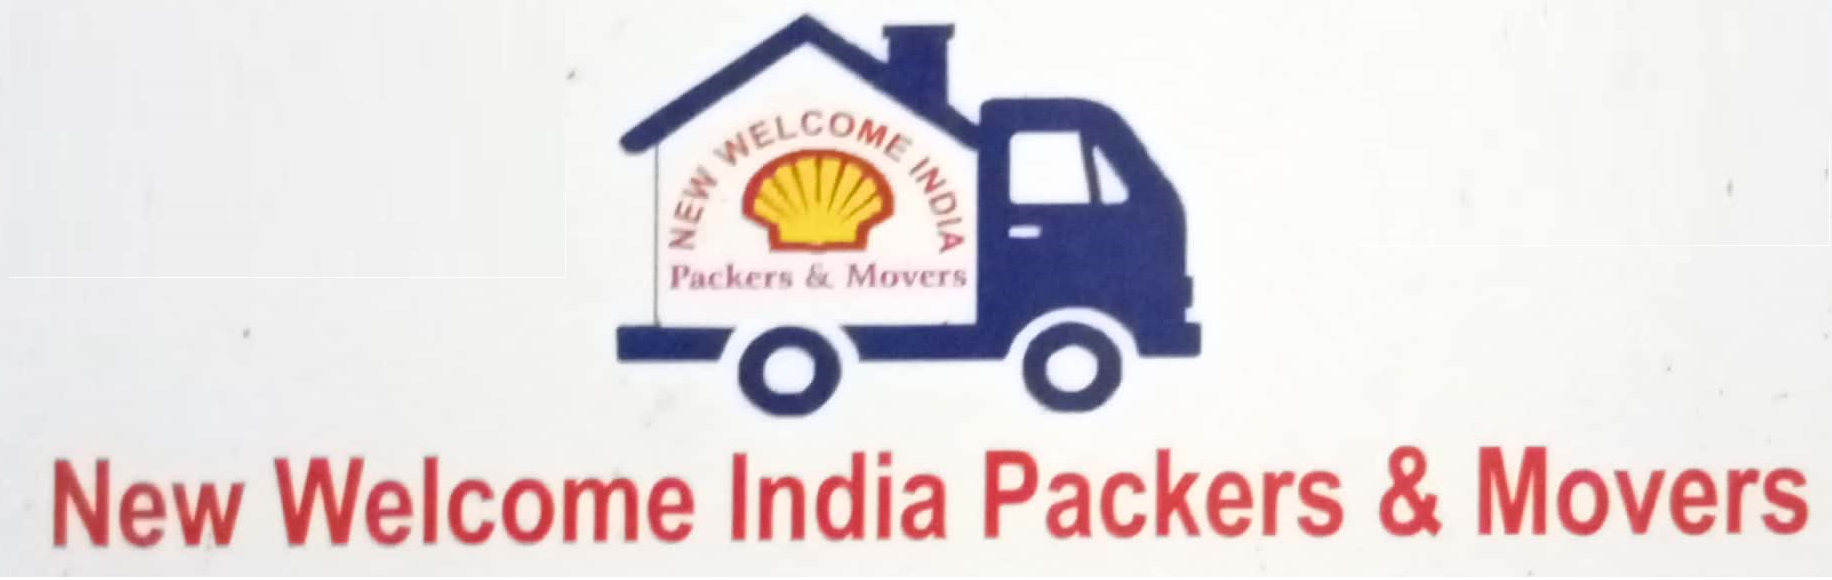 New Welcome India Packers and Movers Indore